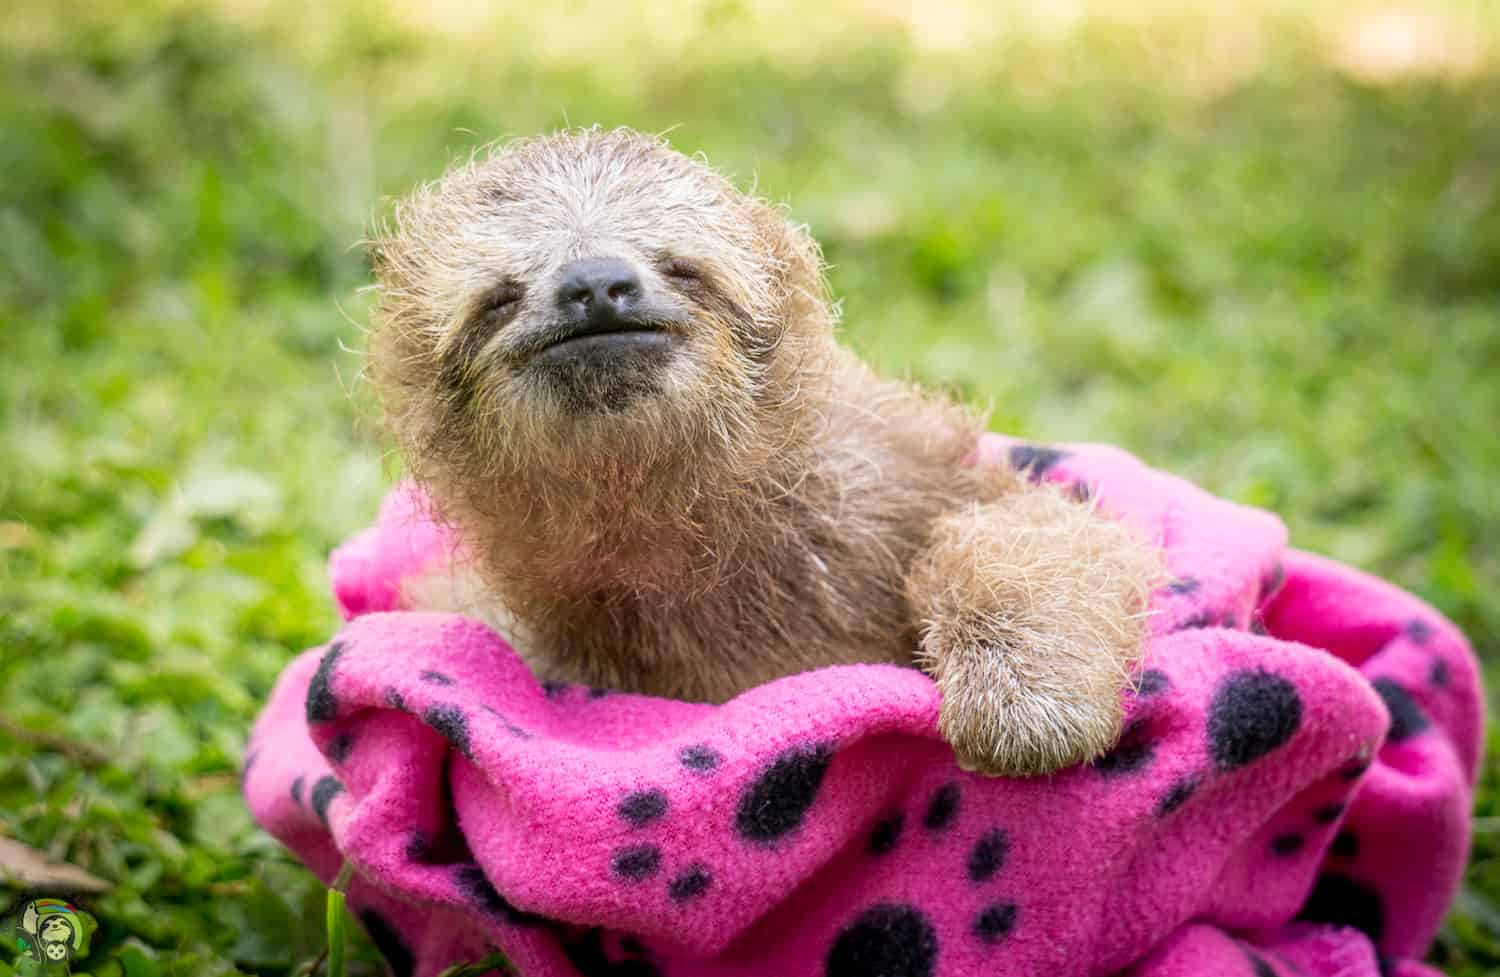 Sol the sloth at Toucan Rescue Ranch in Costa Rica